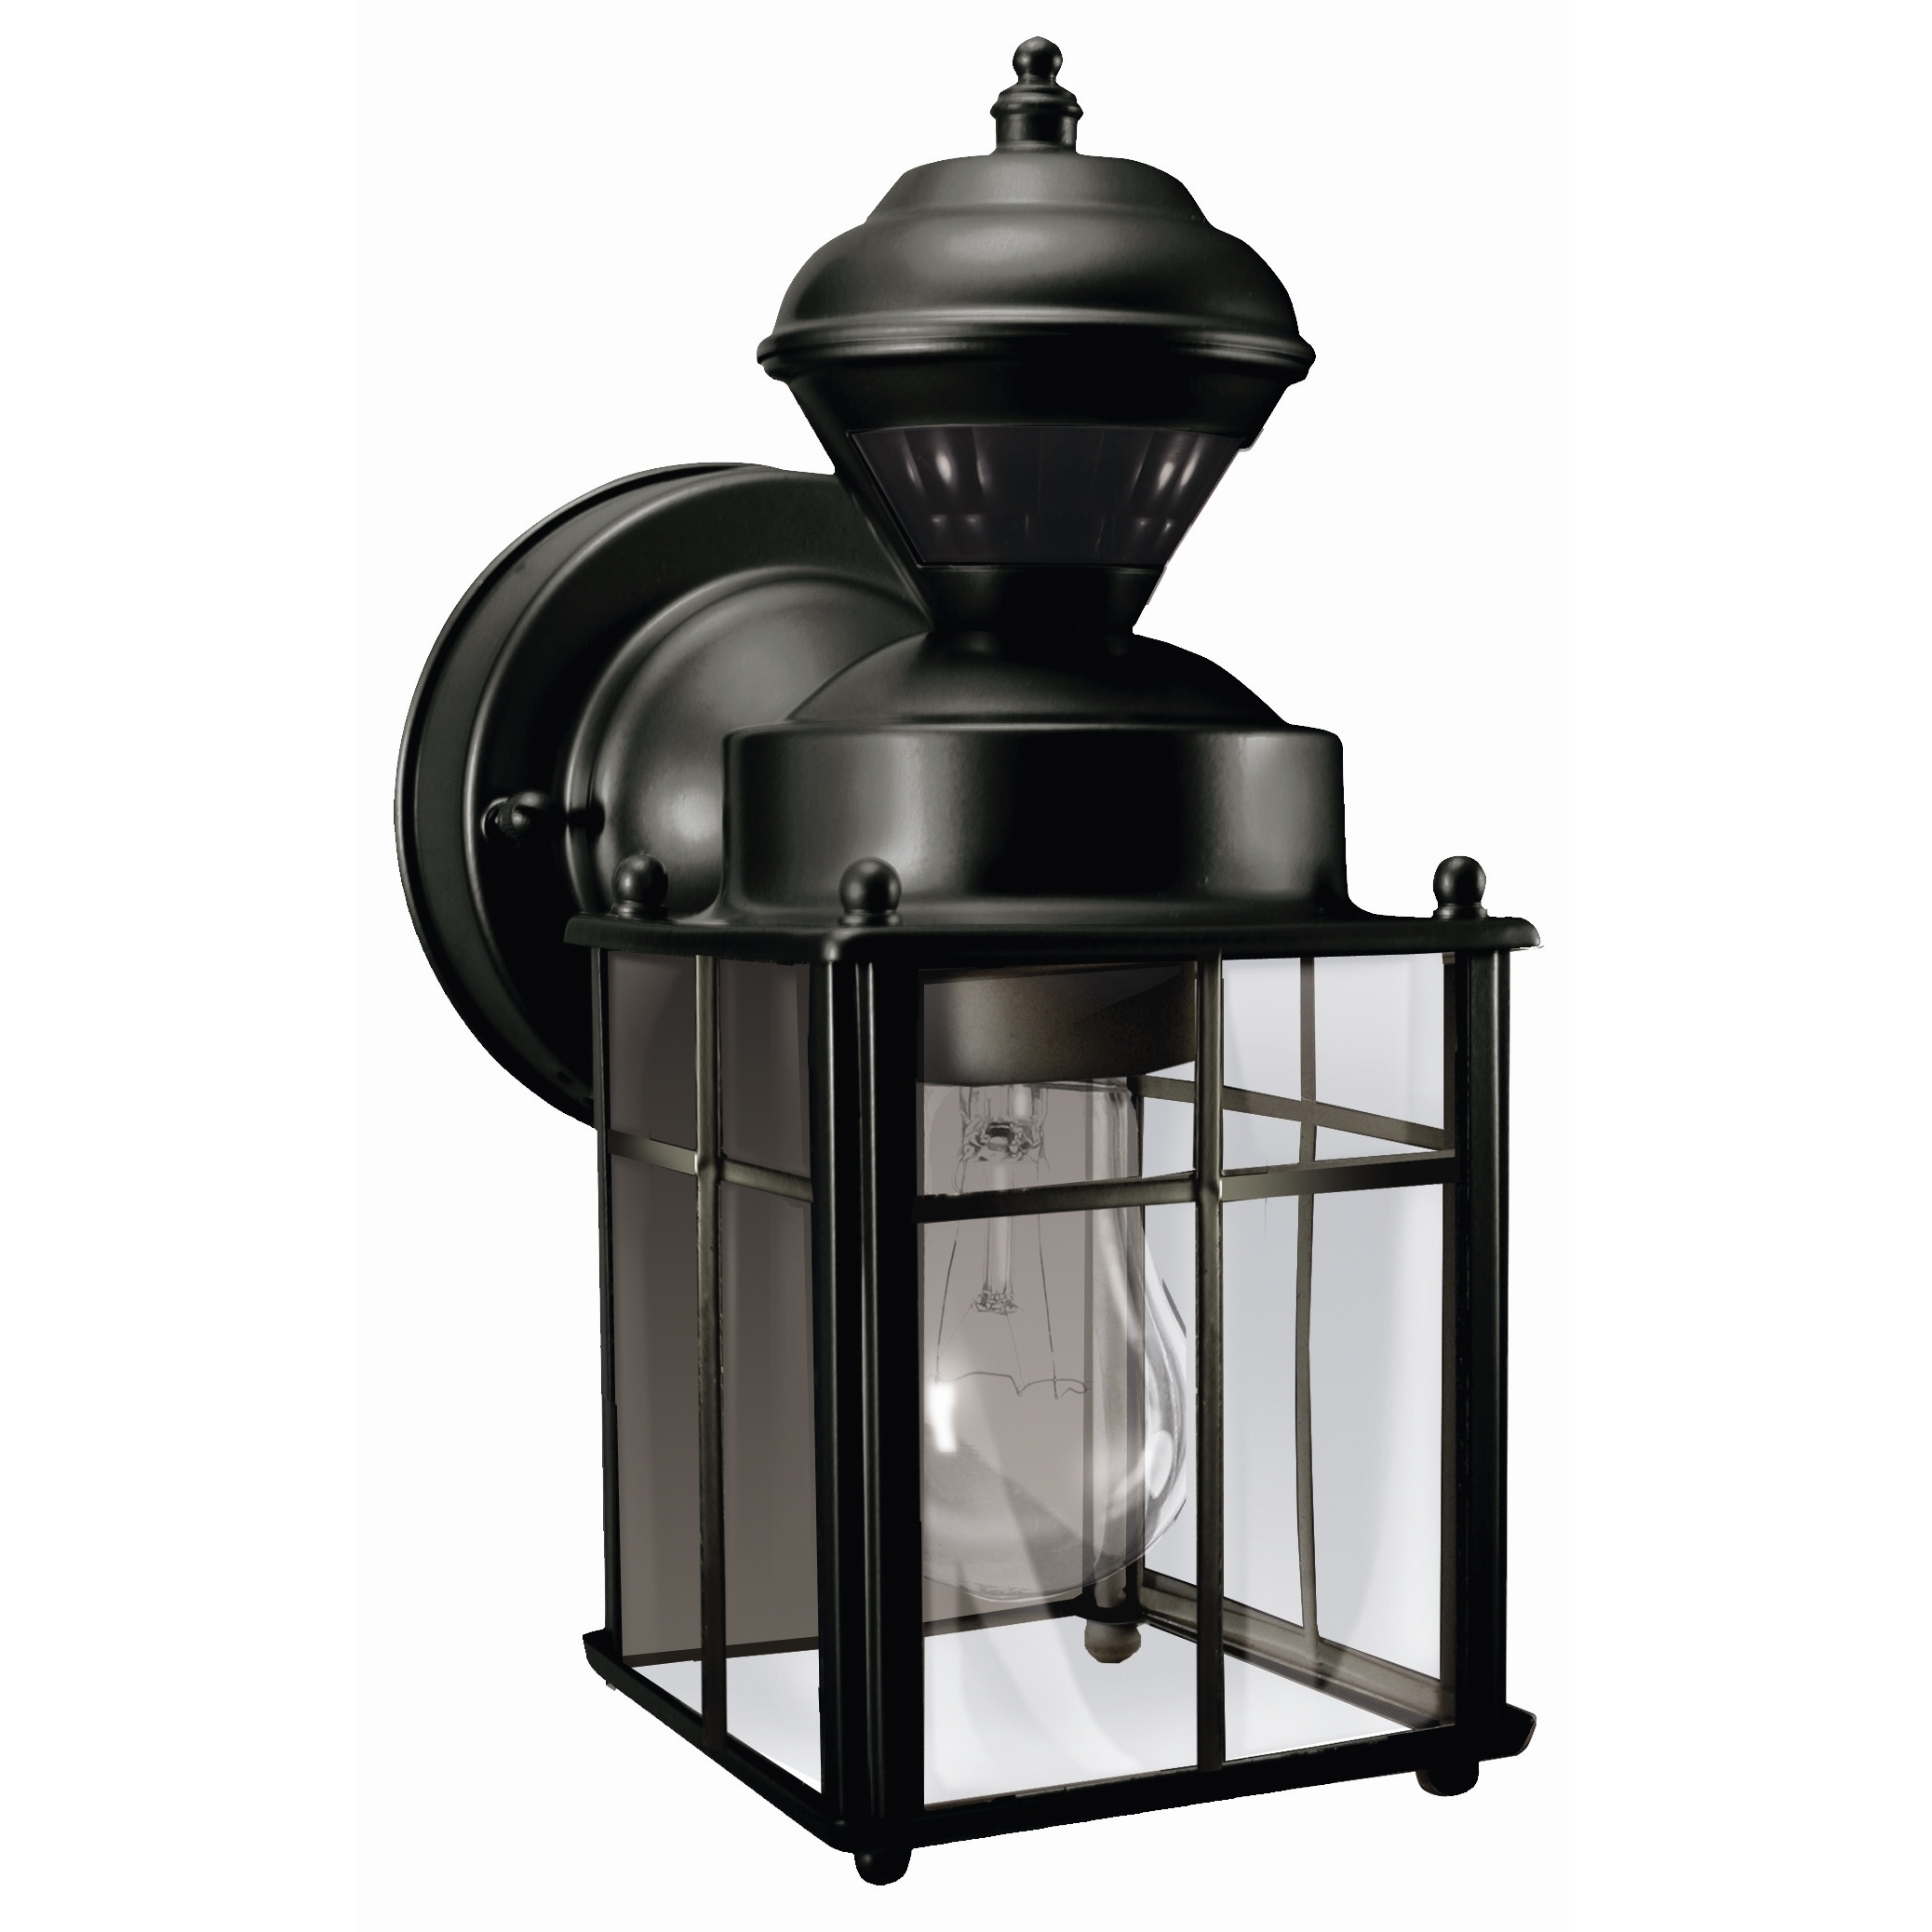 Widely Used Outdoor Wall Lighting Wayfair Olde Colony 2 Light Lantern ~ Clipgoo Regarding Contemporary Rustic Outdoor Lighting At Wayfair (View 17 of 20)